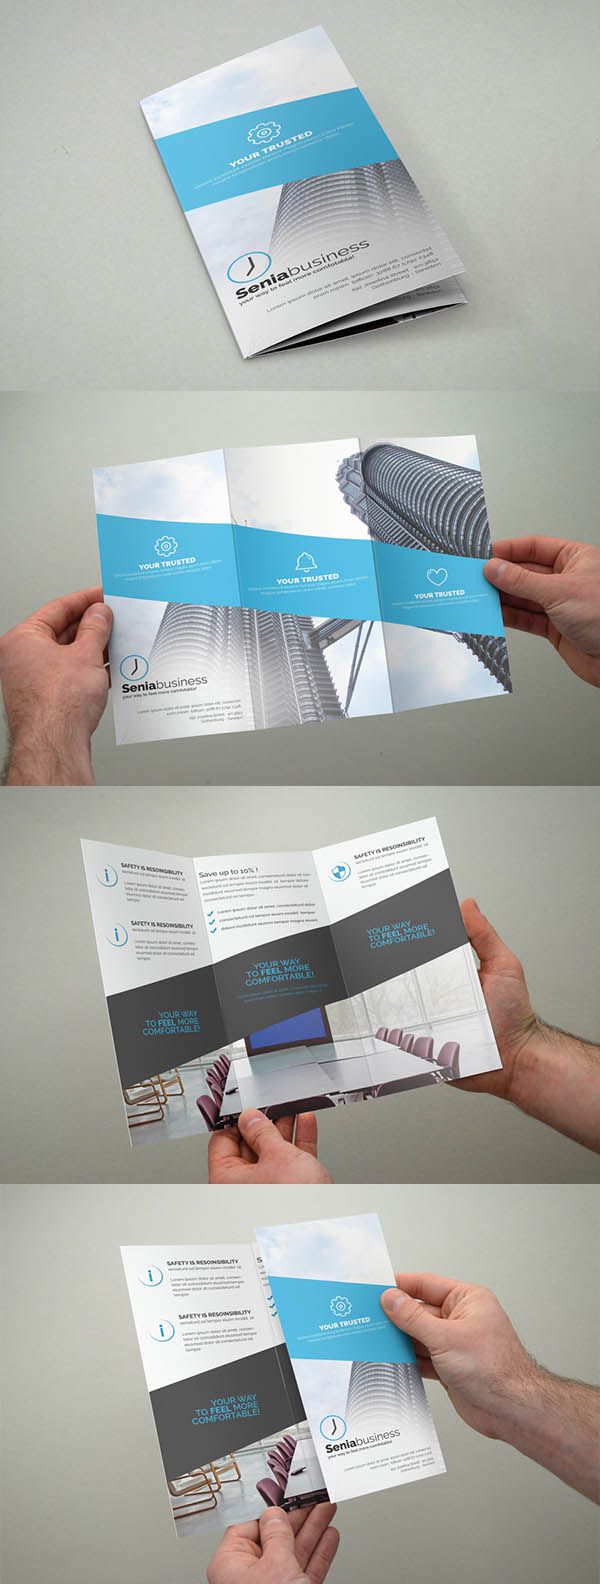 Corporate Trifold Minimal Brochure Design